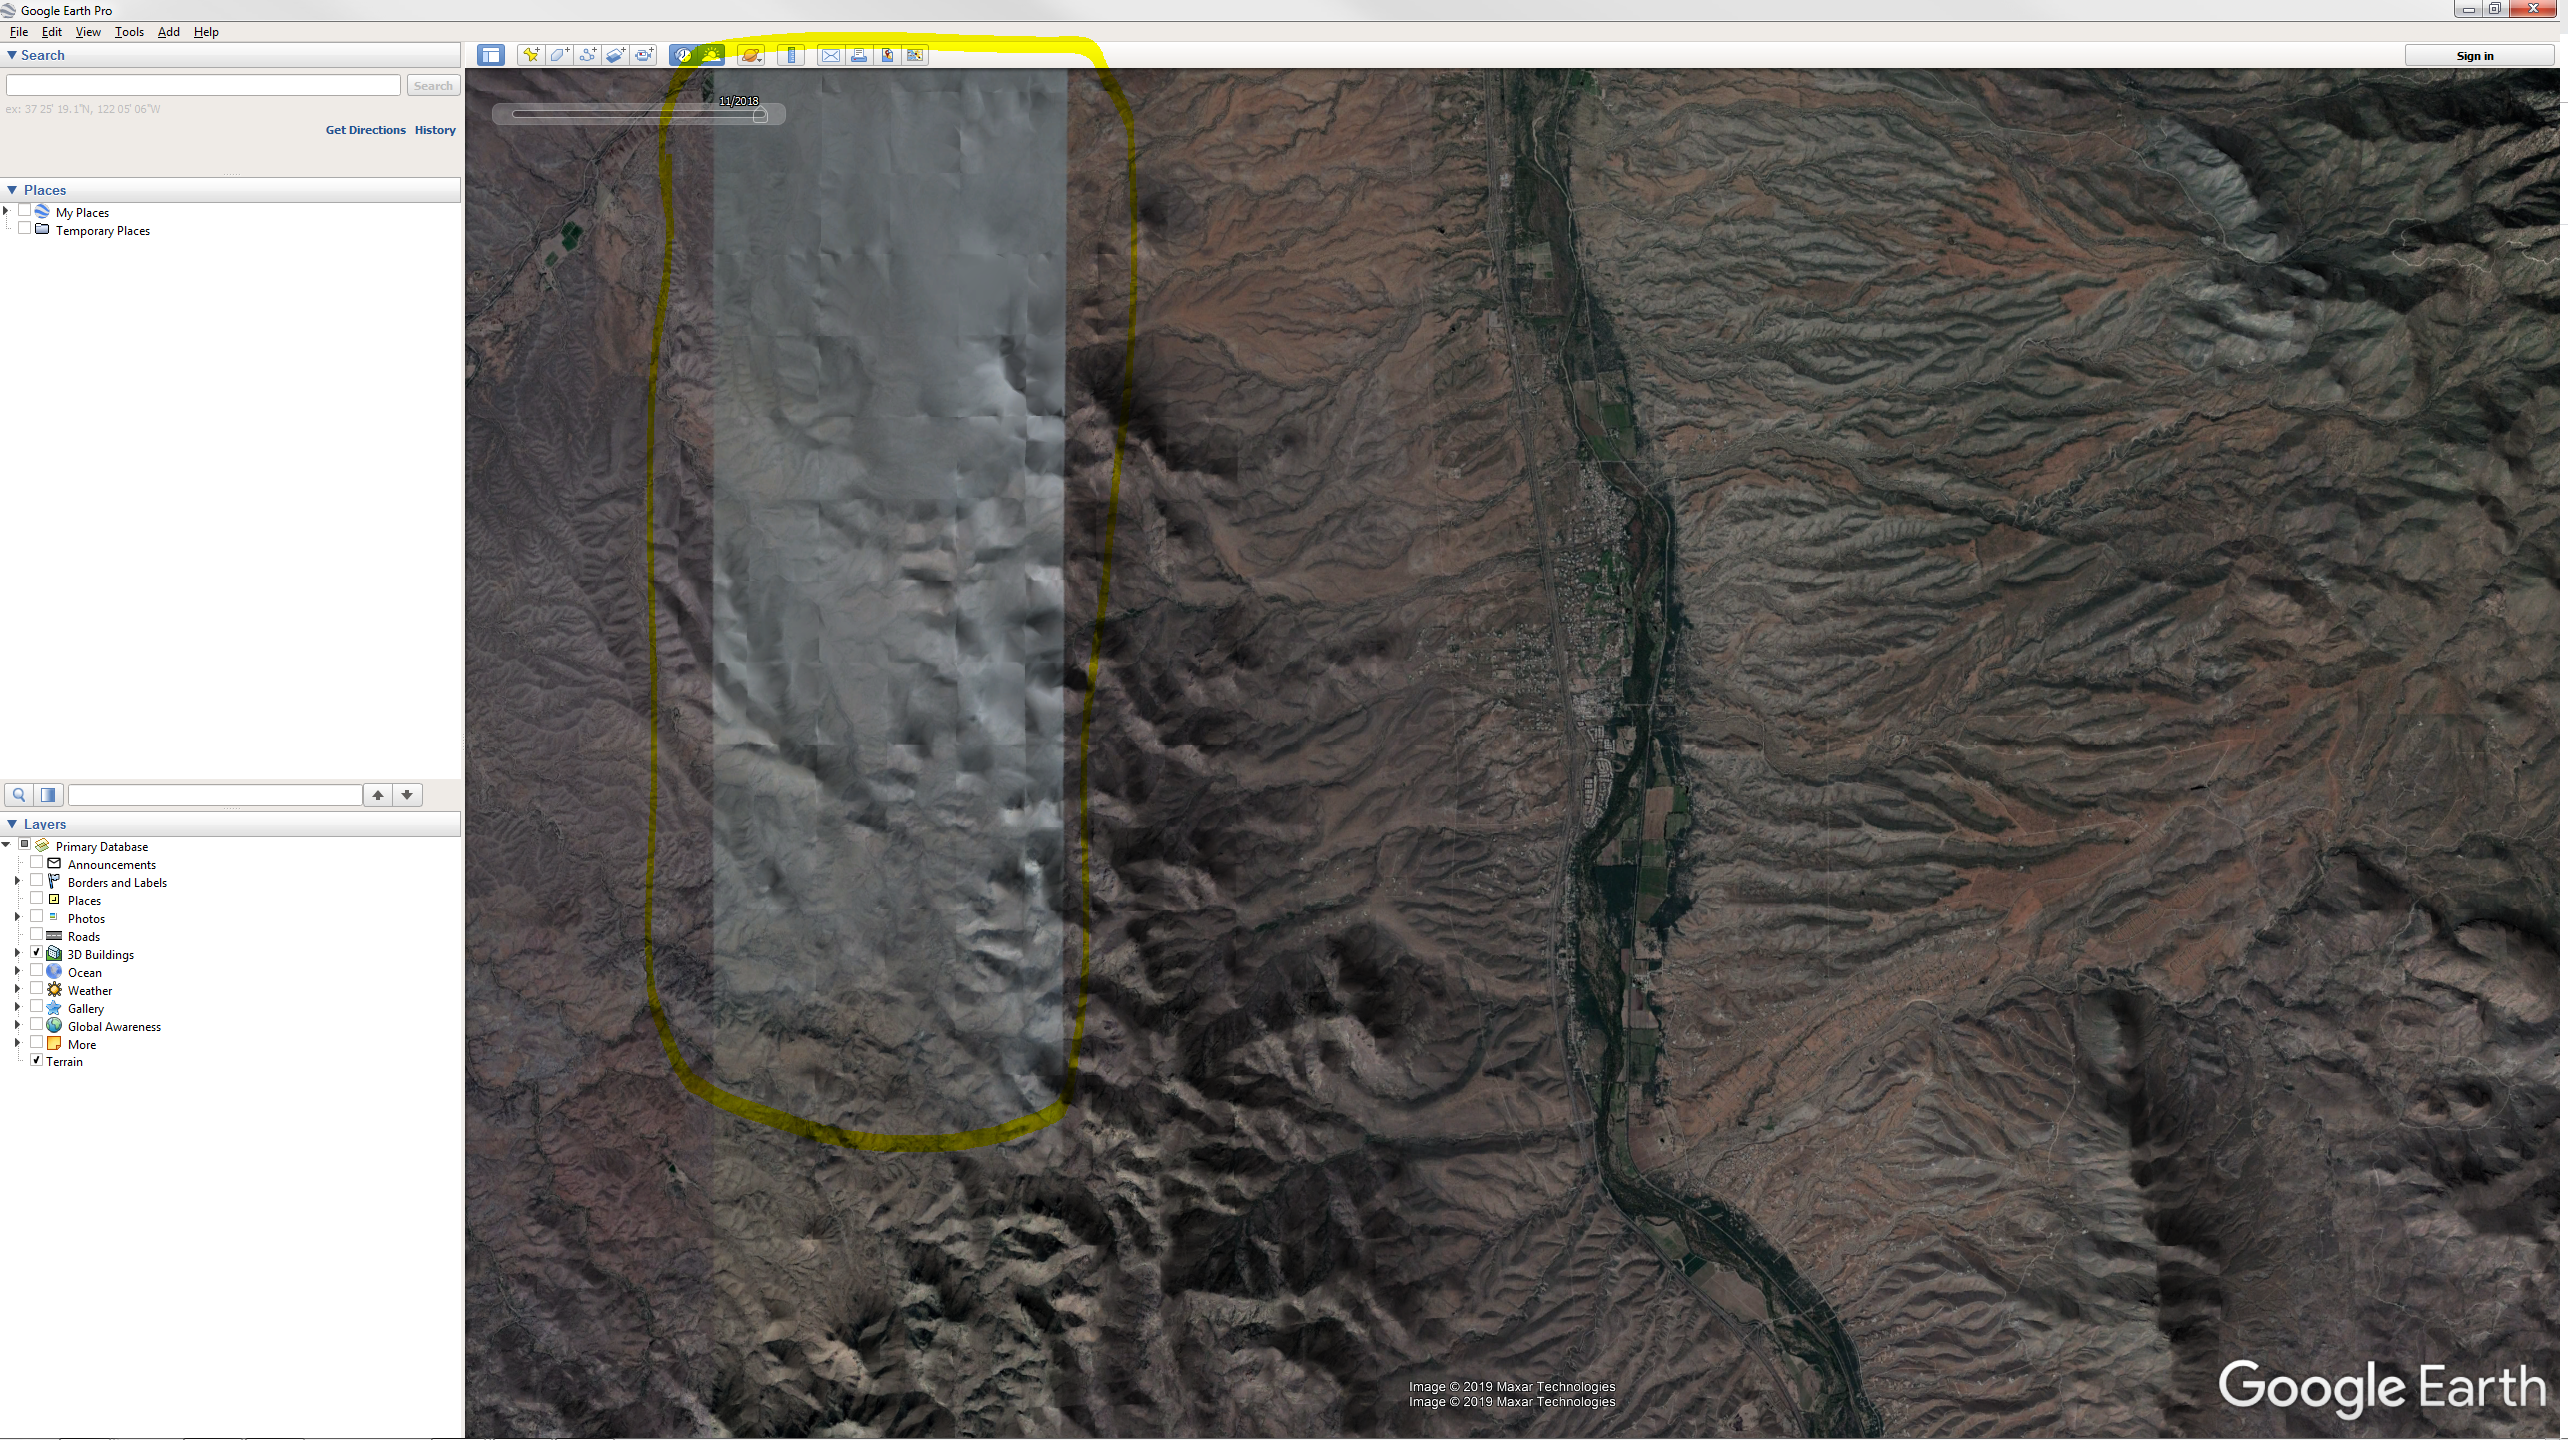 How To View Sunlight Feature S Shadows On Terrain Without